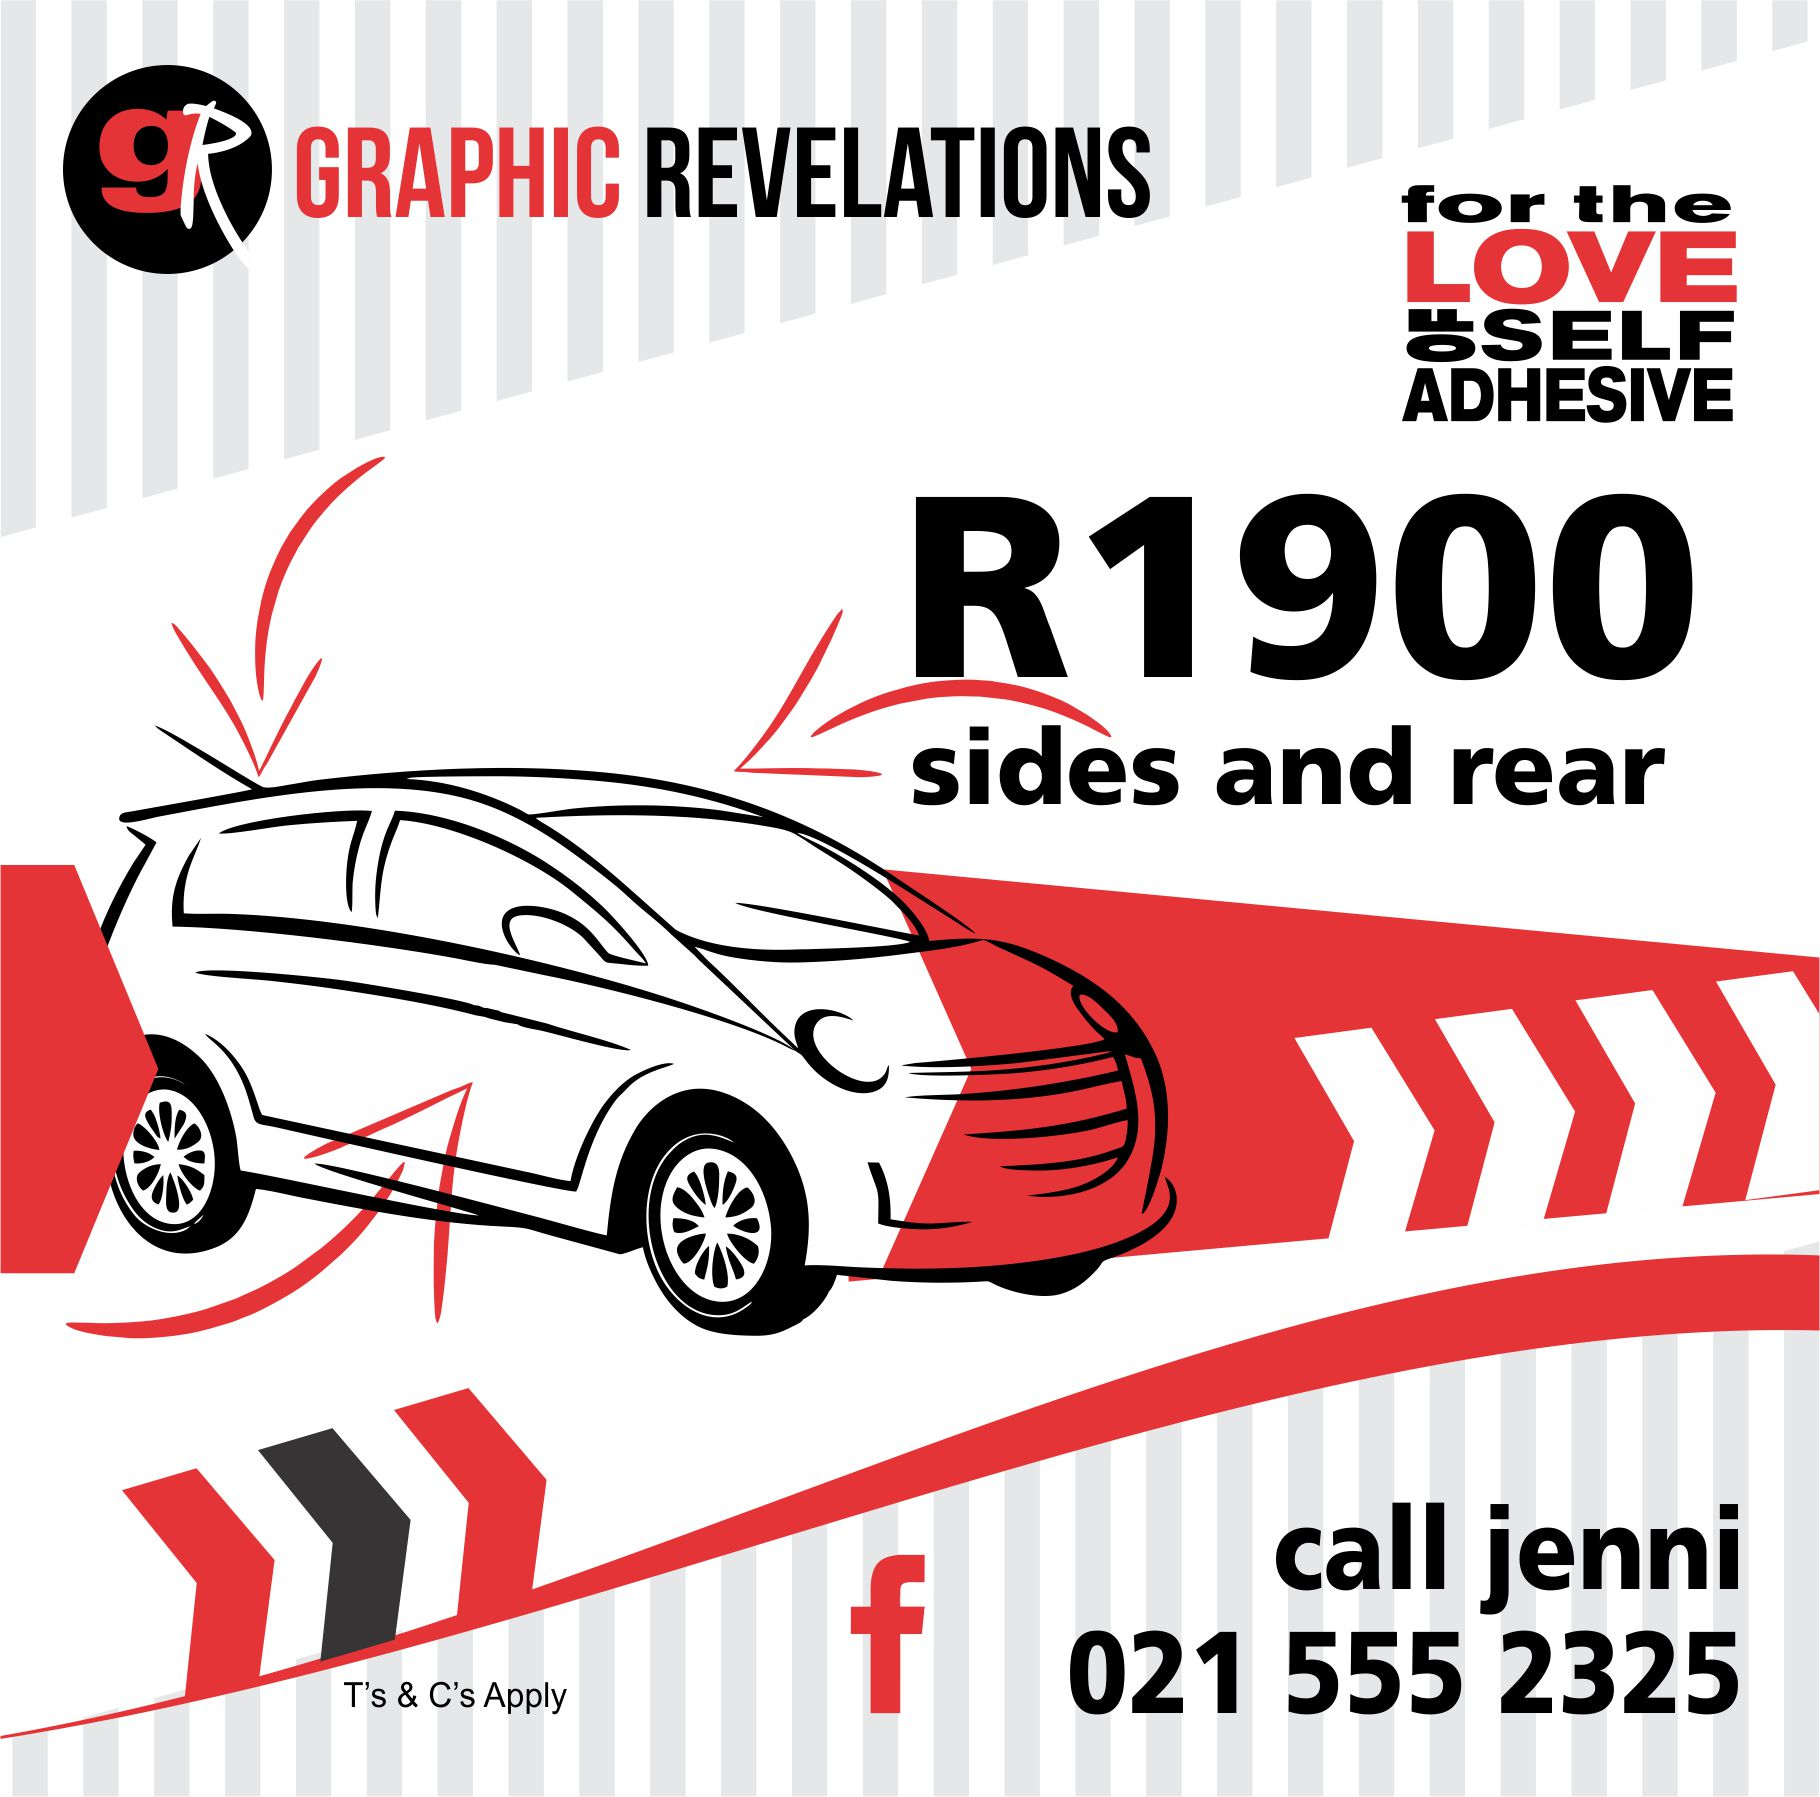 Brand the sides and back of your car for only R1900